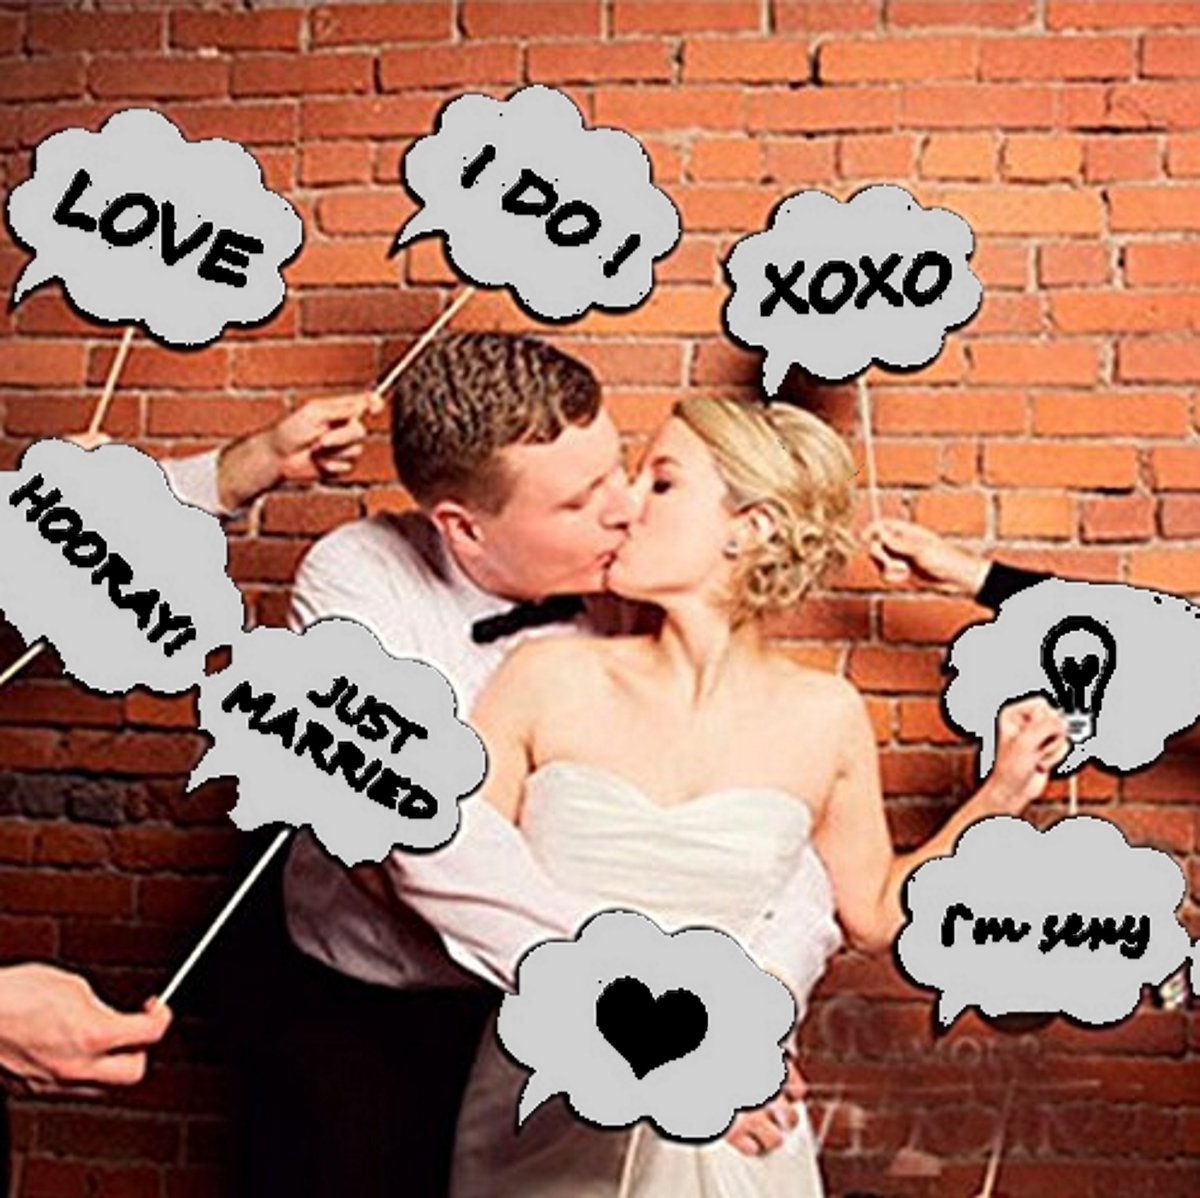 Wedding Photo Booth Props, Dry Erase Bubble Speech Photo Booth Props Attached to the stick, Wedding decorations, Birthday party photo props, 4E's Novelty® by 4E's Novelty (Image #1)